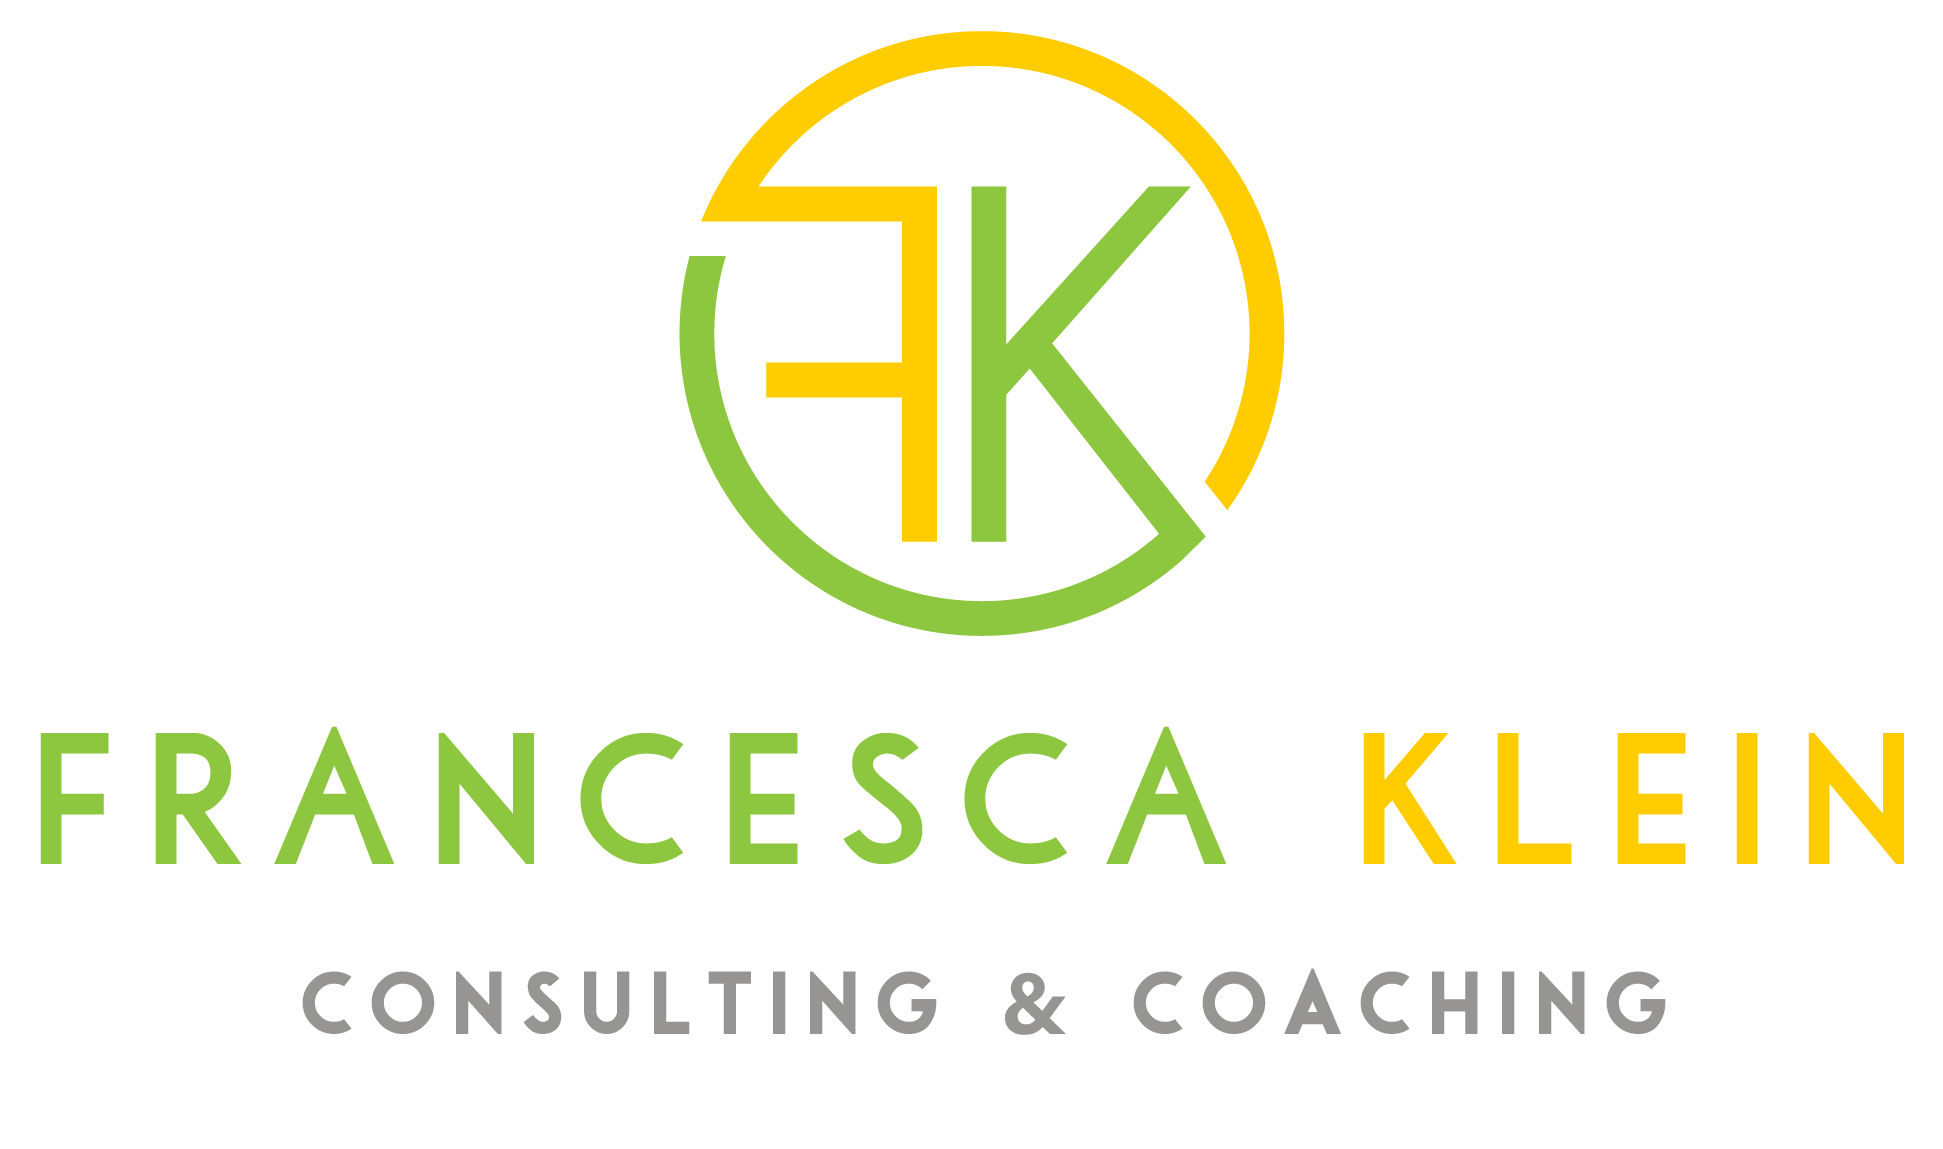 Francesca Klein Consulting & Coaching